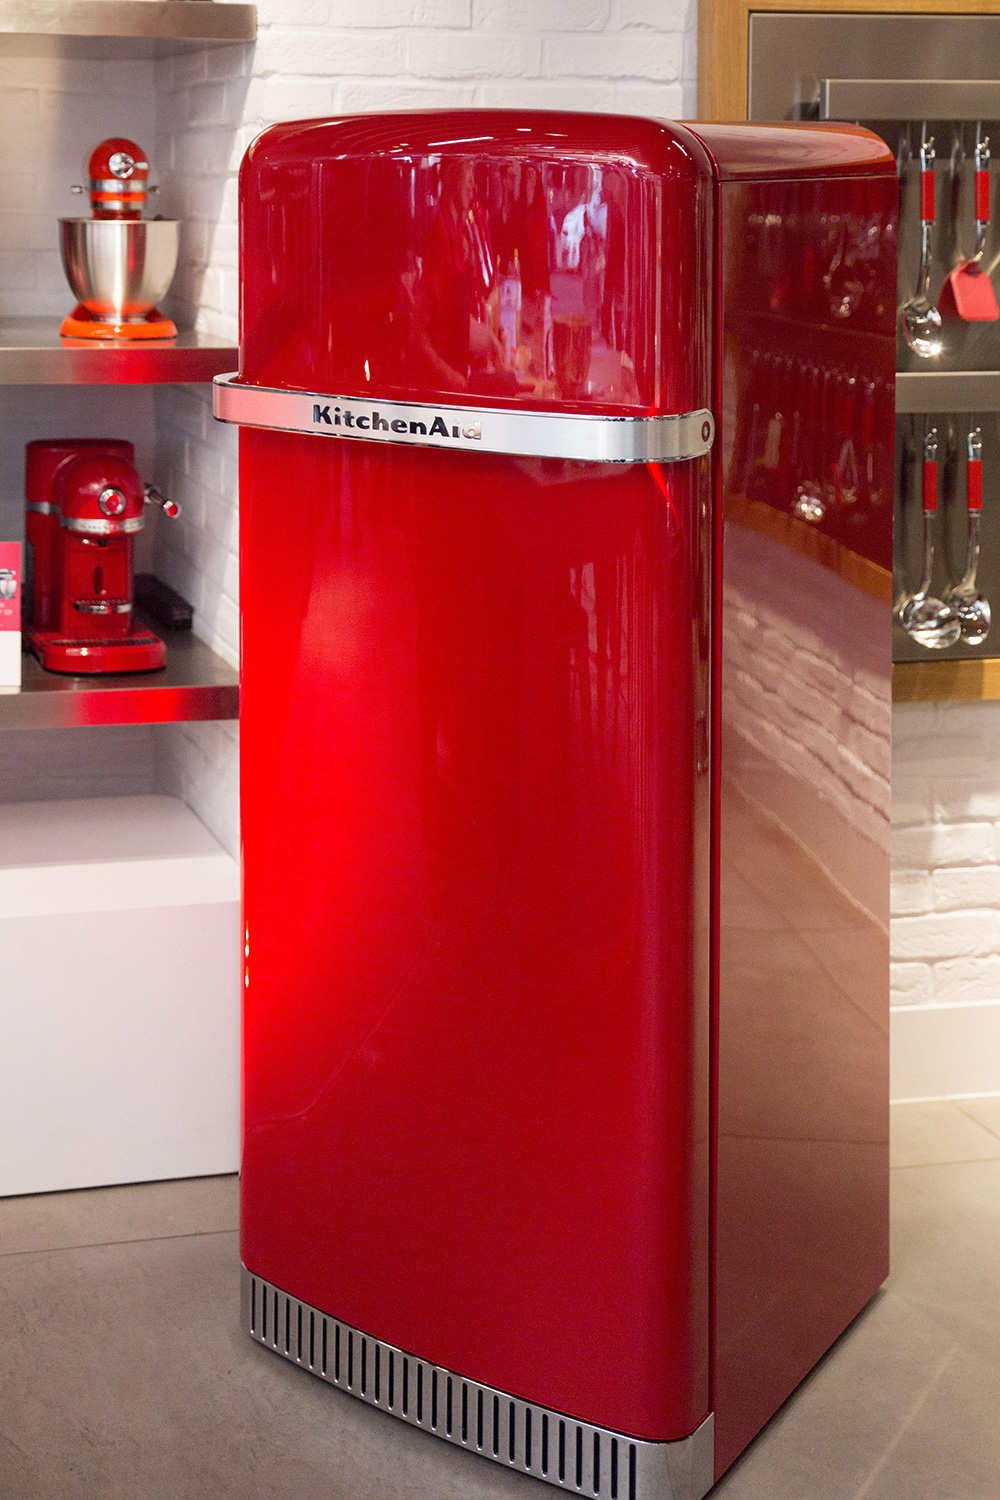 KitchenAid Iconic Fridge - Red Dot Design Award